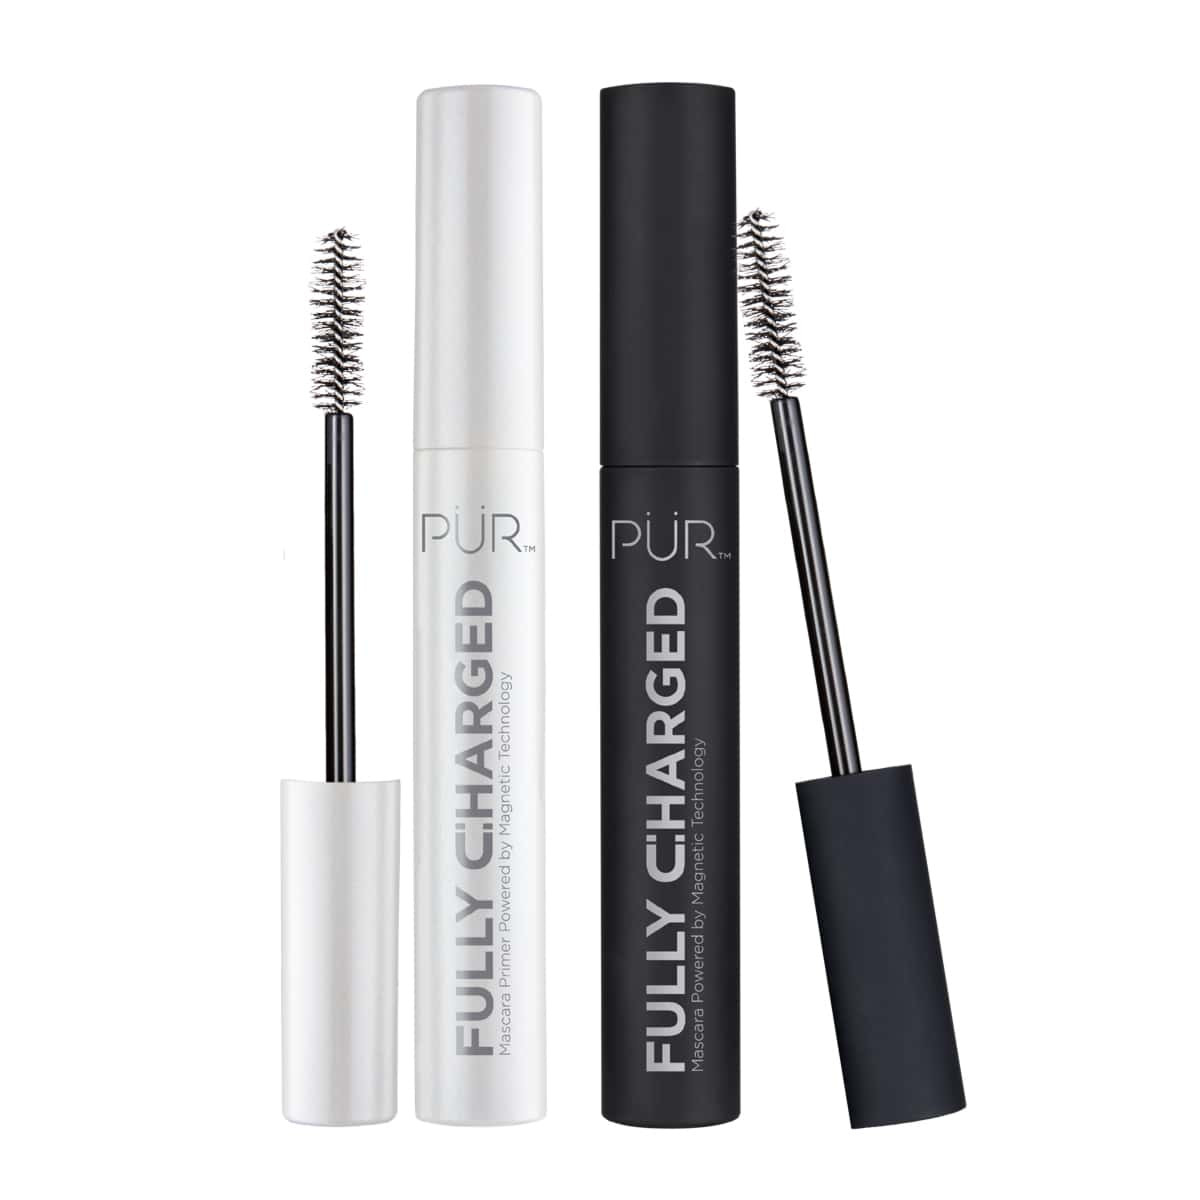 Fully Charged Mascara & Primer Kit